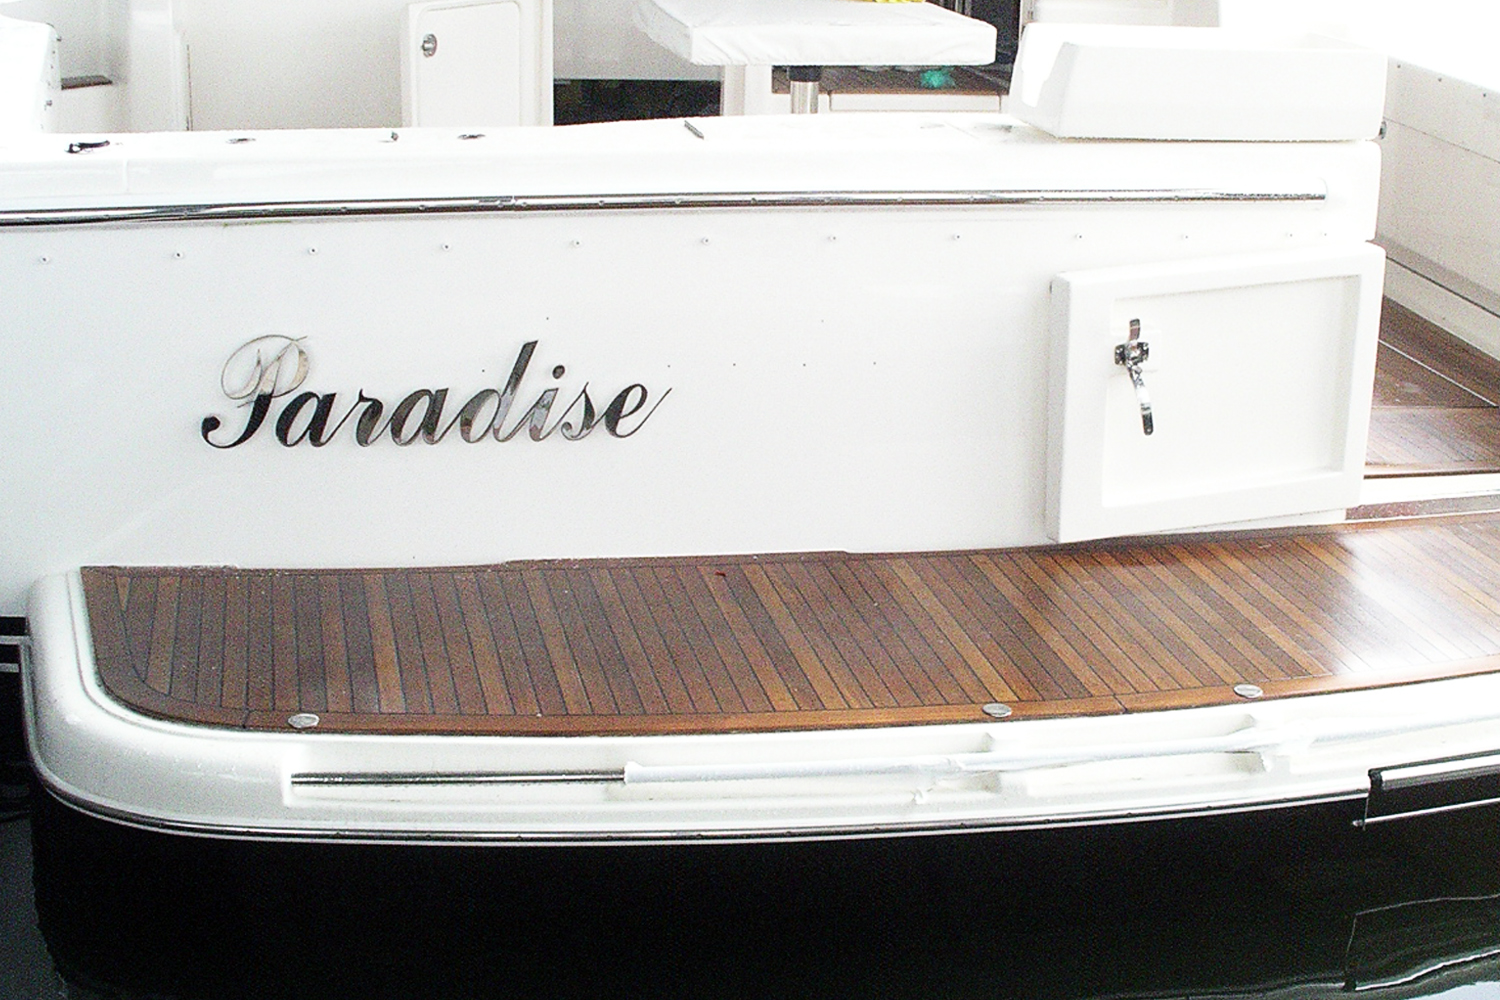 Stainless boat name and lettering